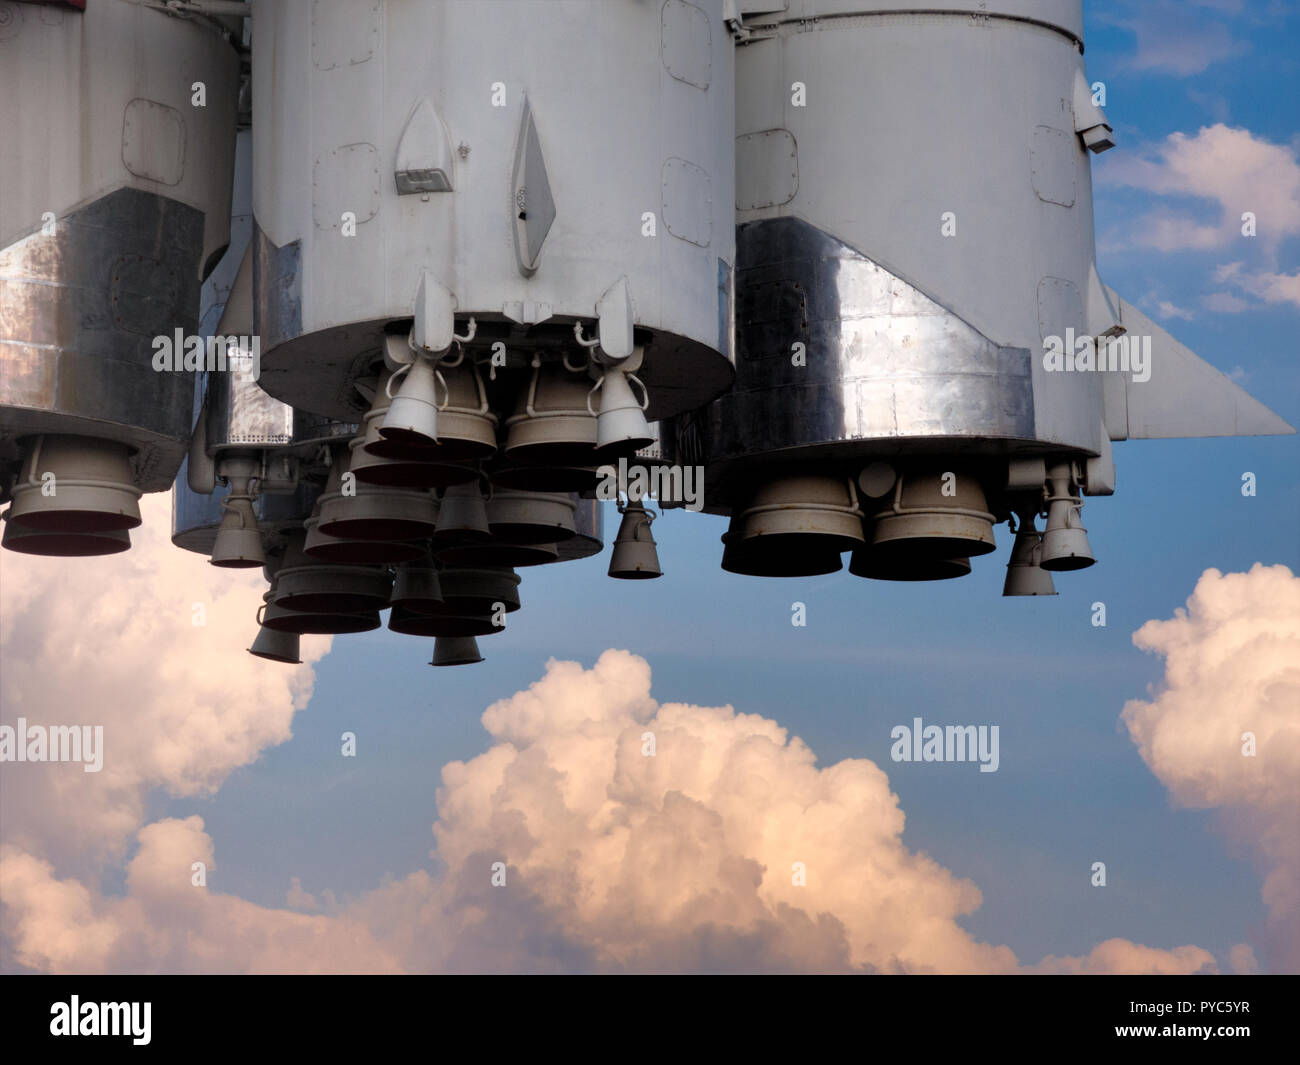 Bottom part of the space rocket, cloudy summer sky at background - Stock Image